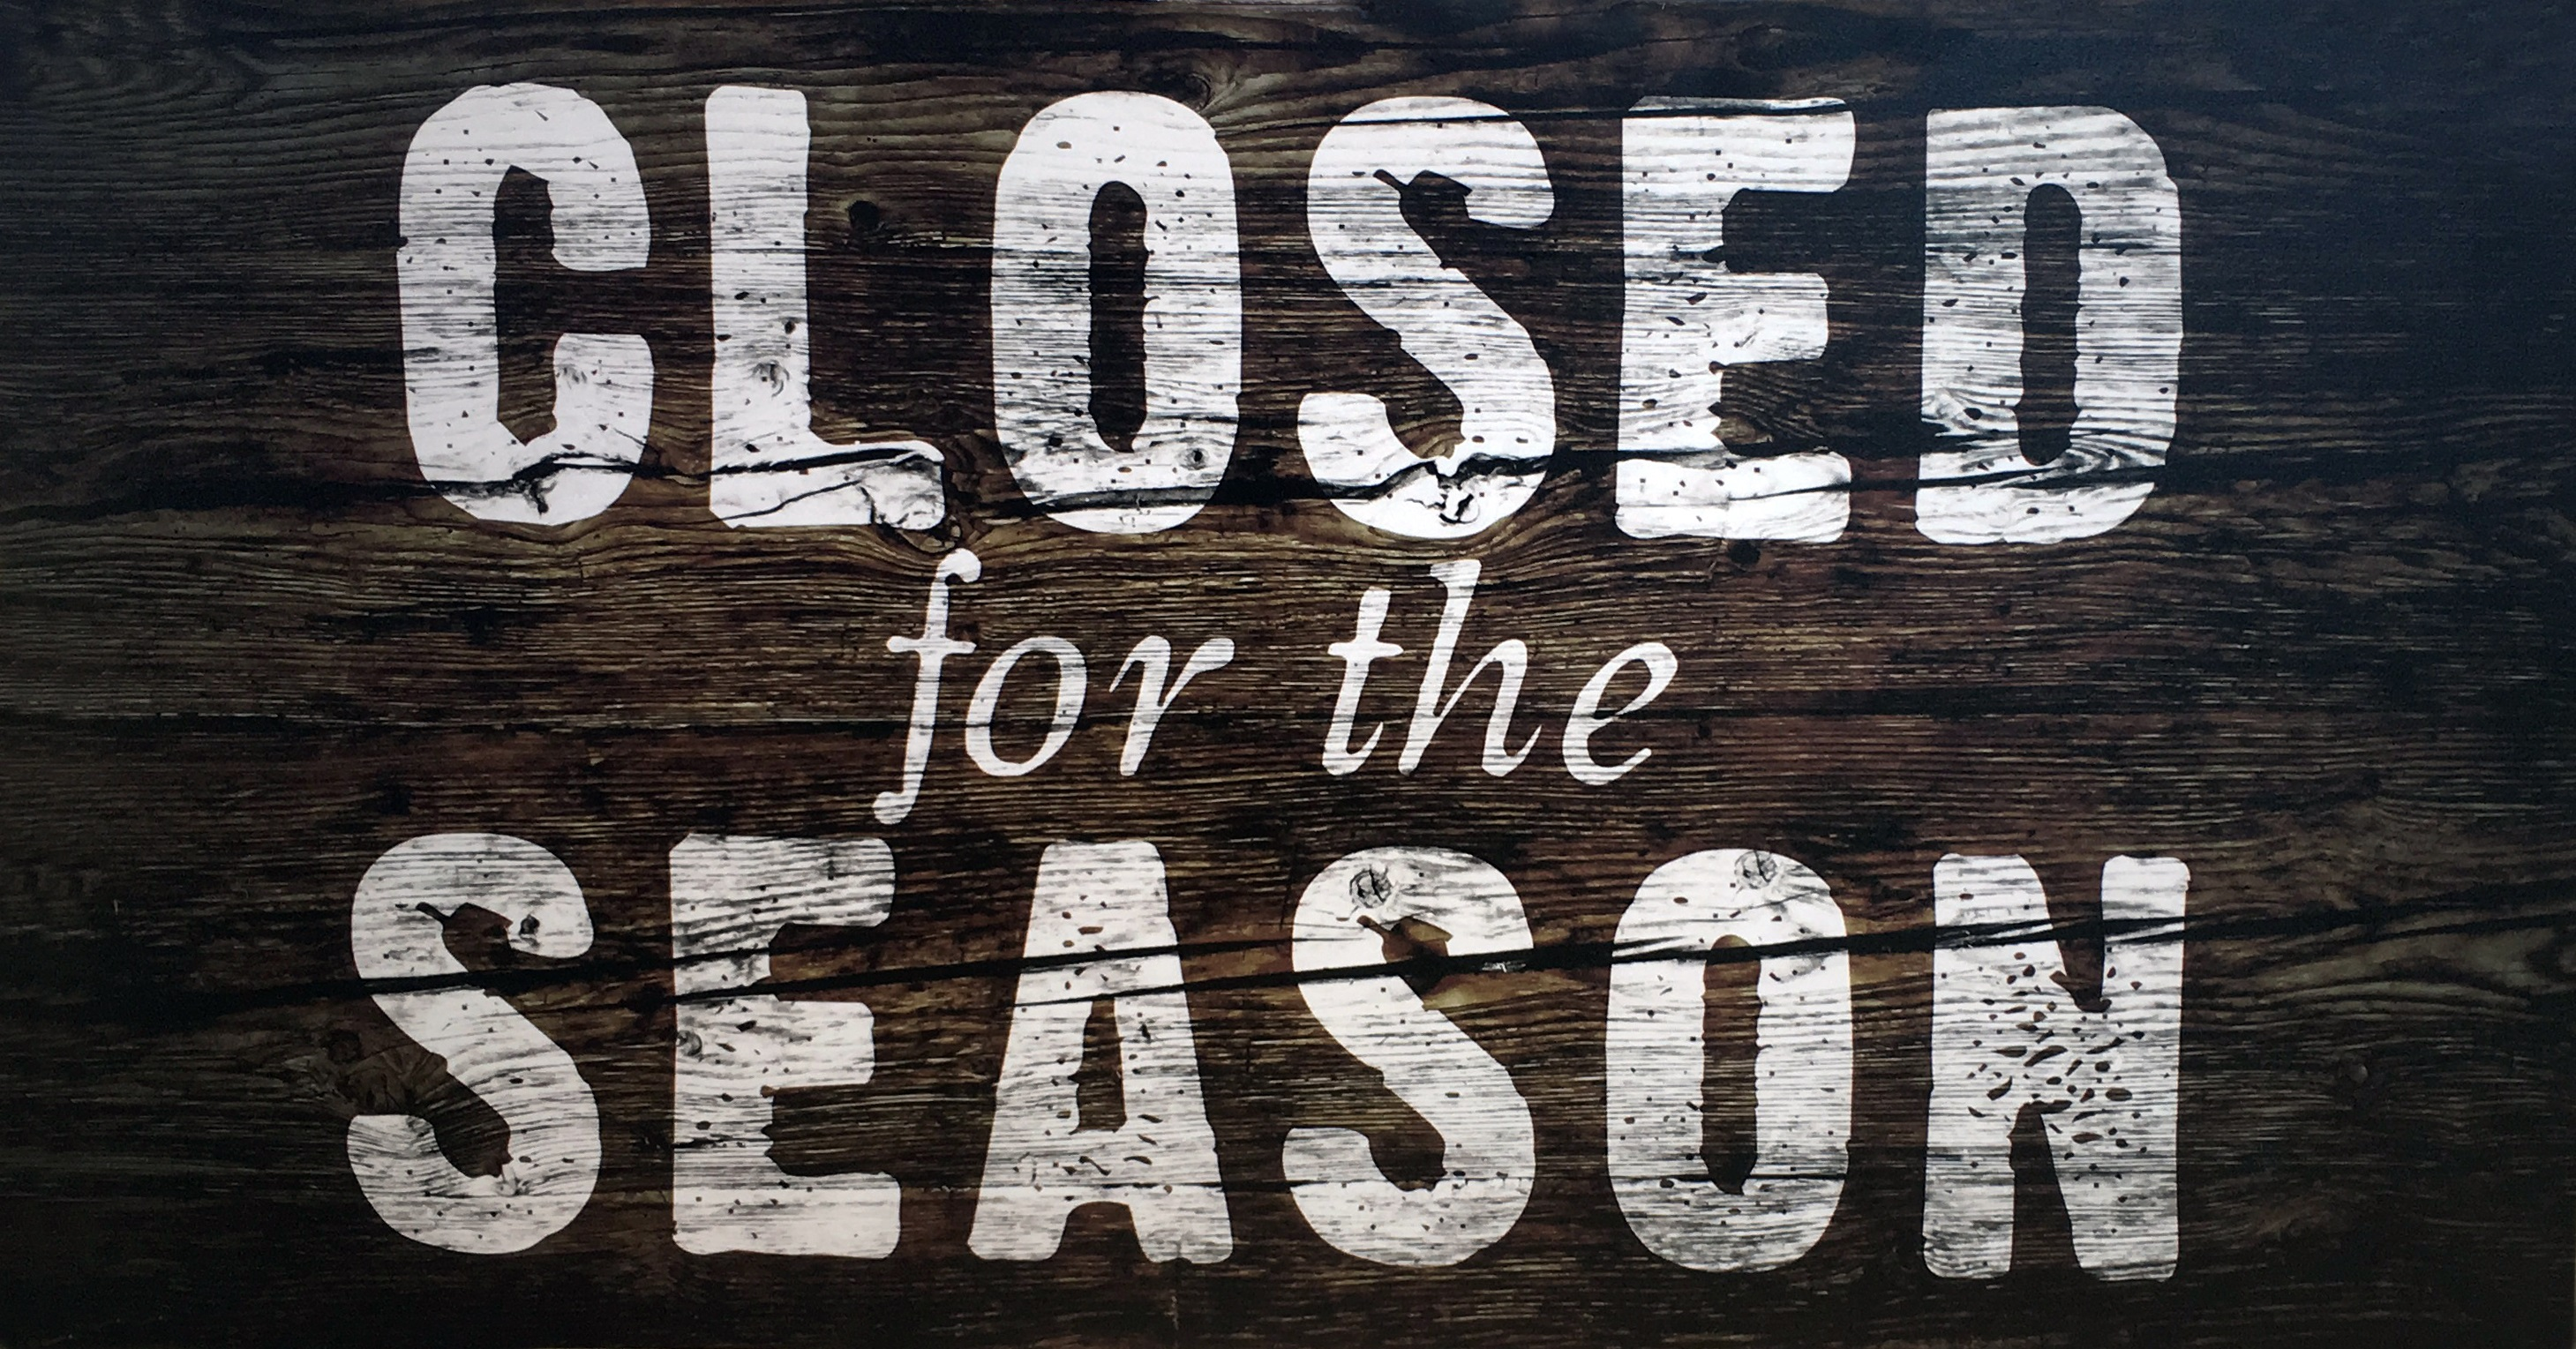 'Closed for the Season' is written in white paint against a wooden sign.